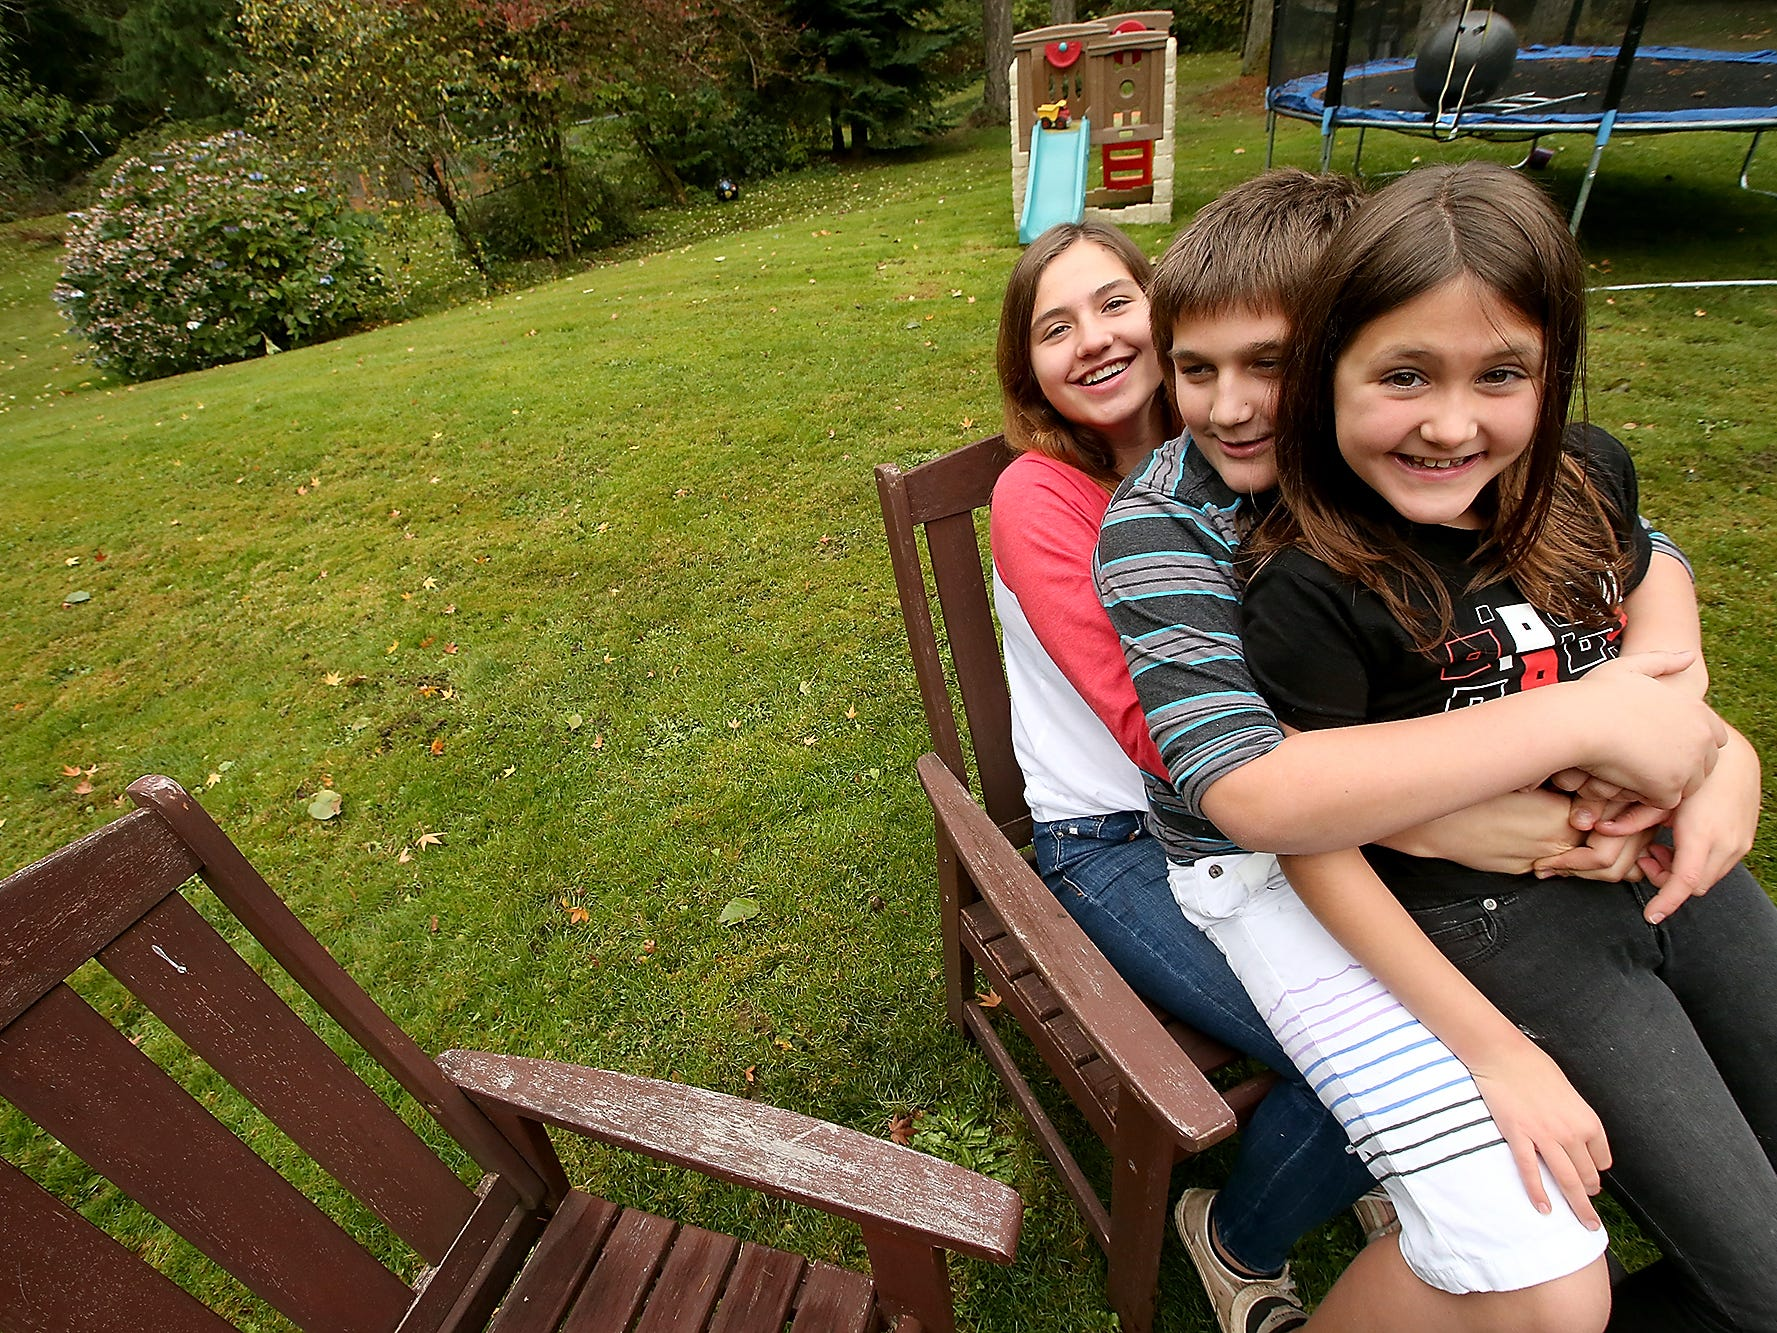 The Alcover siblings (back to front) Kylie, 15, Gavin, 11, and Phoenix, 9, jokingly sit in one lawn chair for a portrait on Wednesday, November 14, 2018. The close-knit siblings from California lost their home in the Paradise fire and are staying with family friends Amber and Douglas Shaw isn Suquamish while their parents work things out in California.